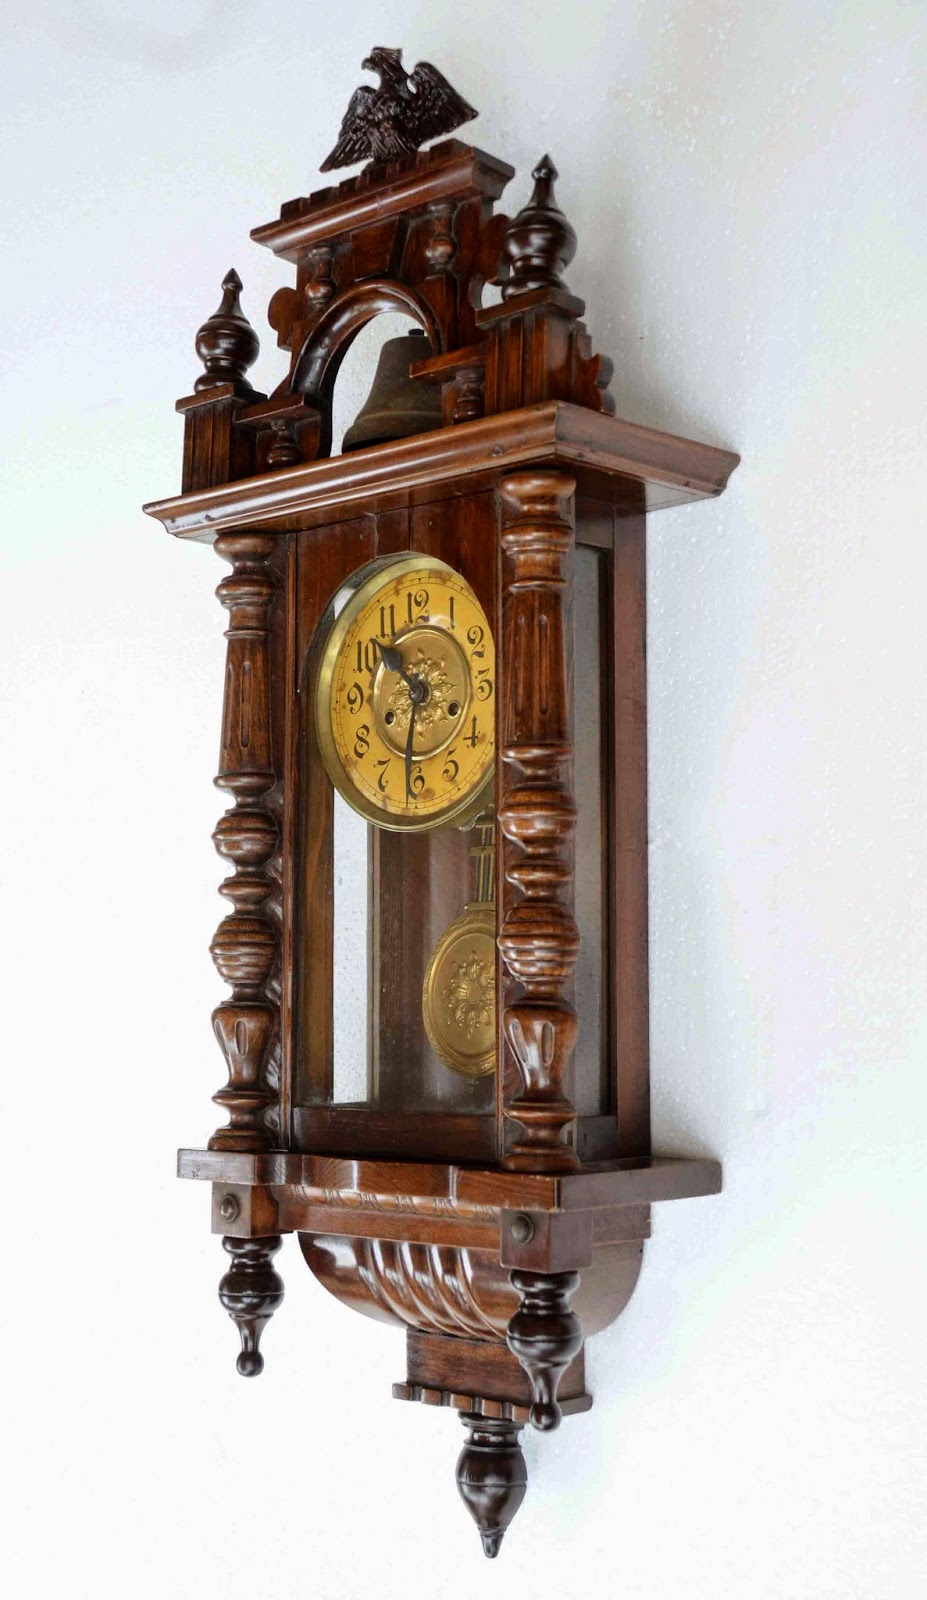 Hac wall clock images home wall decoration ideas hac wall clock images home wall decoration ideas hac wall clock choice image home wall decoration amipublicfo Choice Image